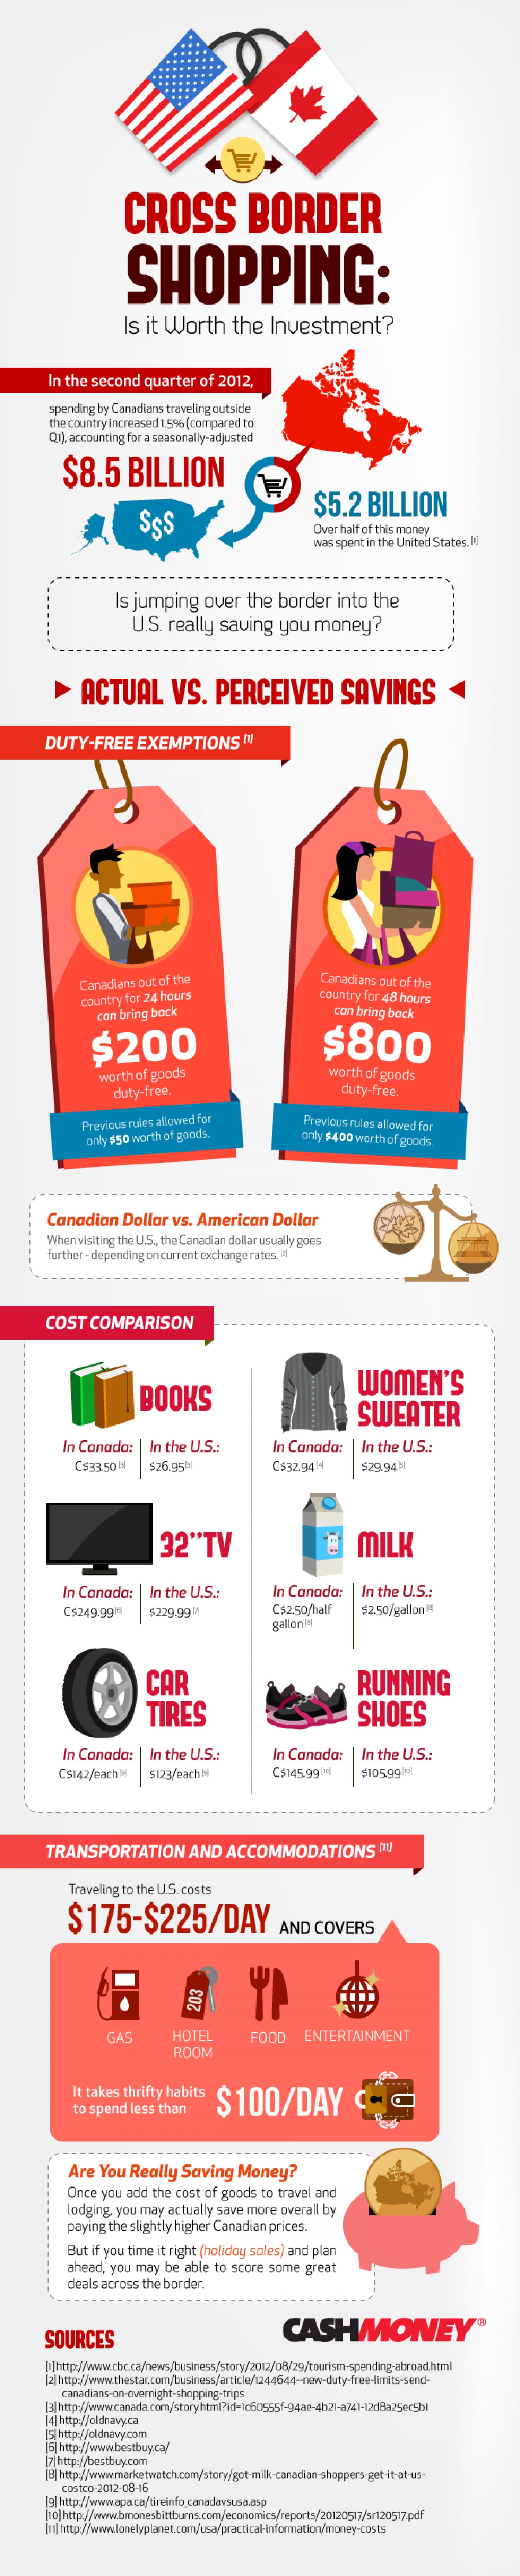 Is Cross-Border Shopping Worth The Trip? Infographic